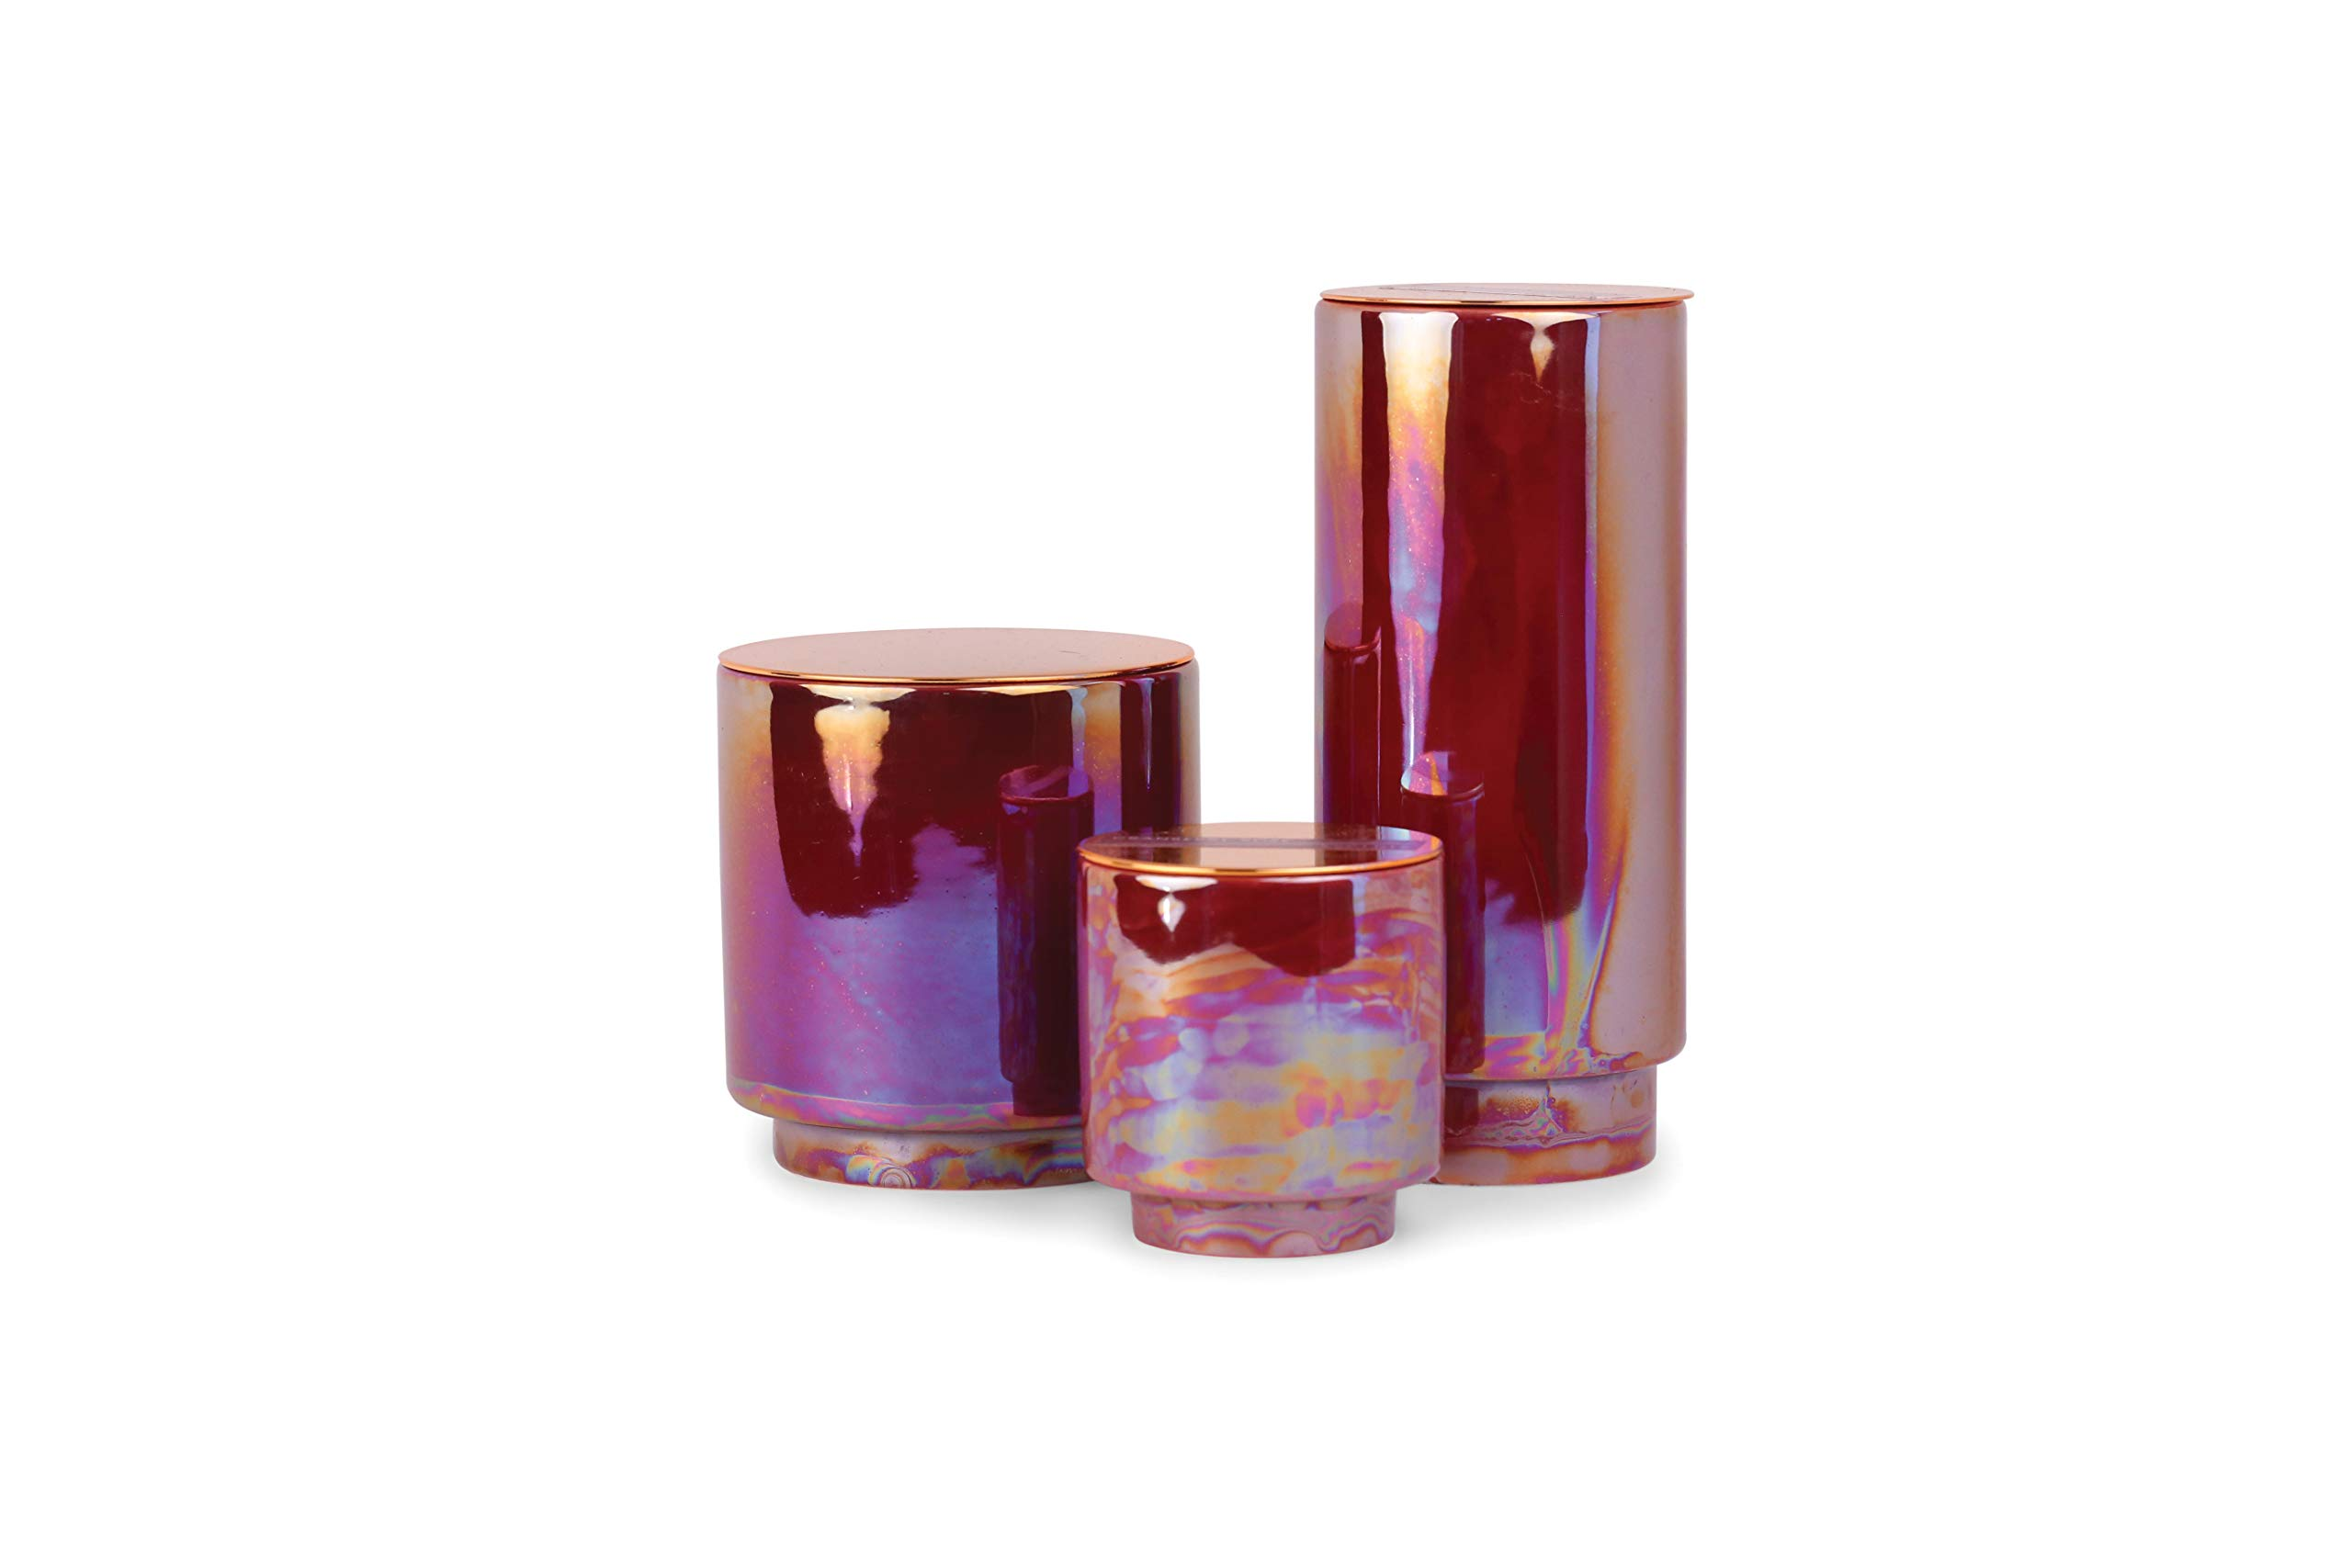 Paddywax Candles Glow Collection Scented Soy Wax Blend Candle in Iridescent Ceramic Pot, Medium- 17 Ounce, Cranberry & Rosé by Paddywax Candles (Image #3)